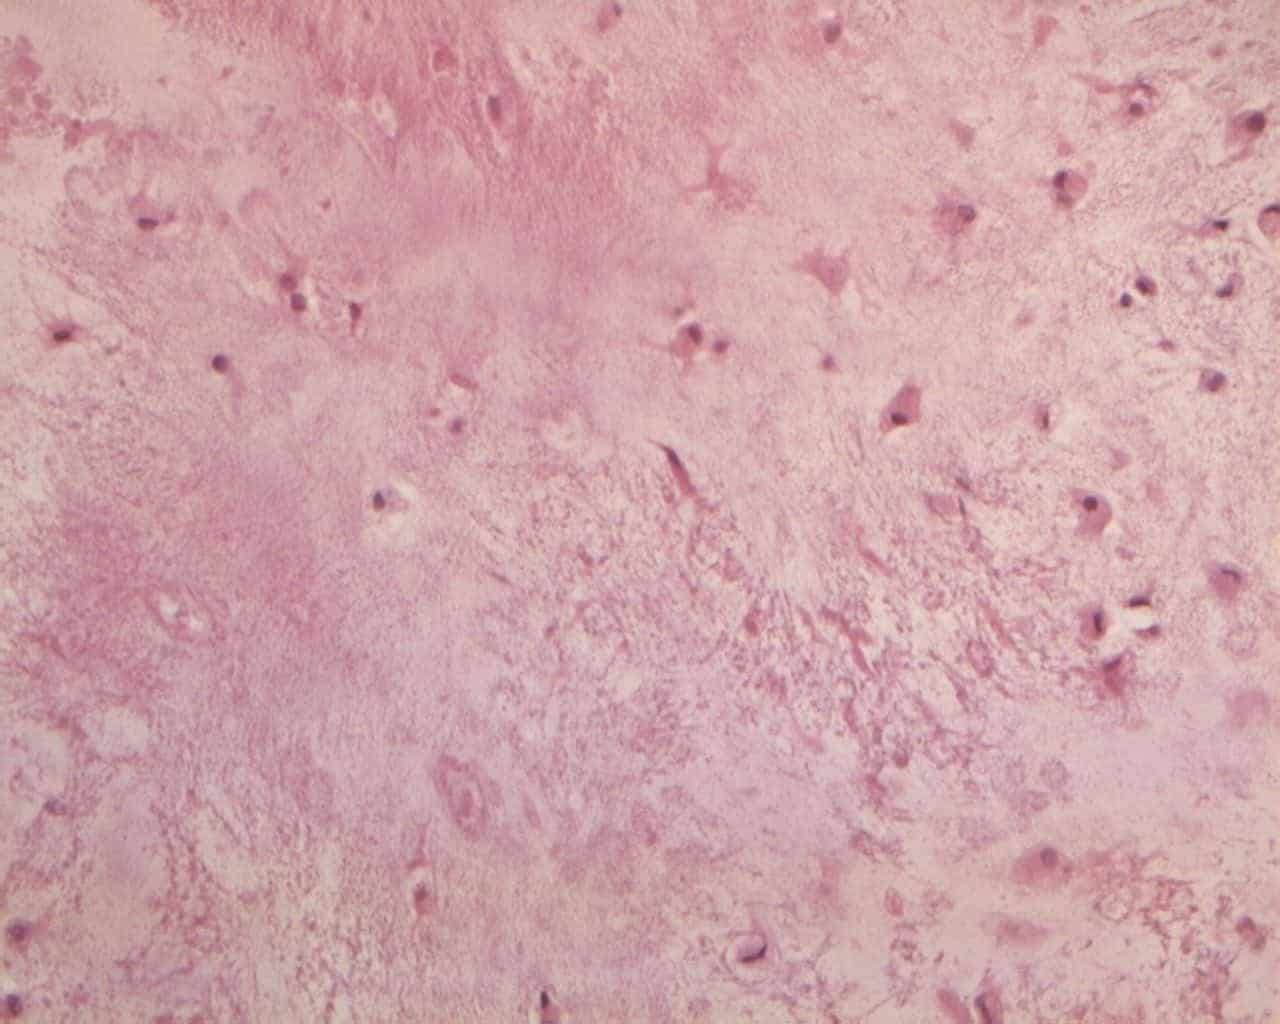 Figure 4A. Typical enchondroma: hypocellular tumor with abundant hyaline cartilage matrix without necrosis and mitosis (e.e. 20x).